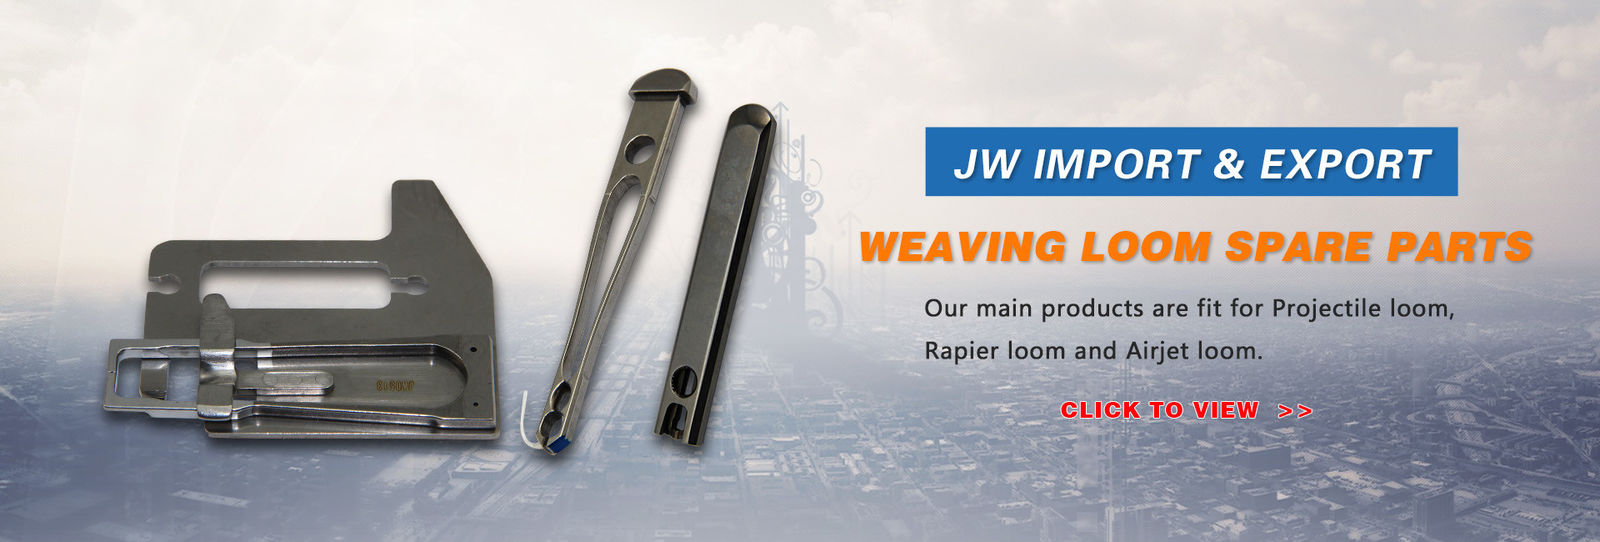 China best Weaving Loom Spare Parts on sales